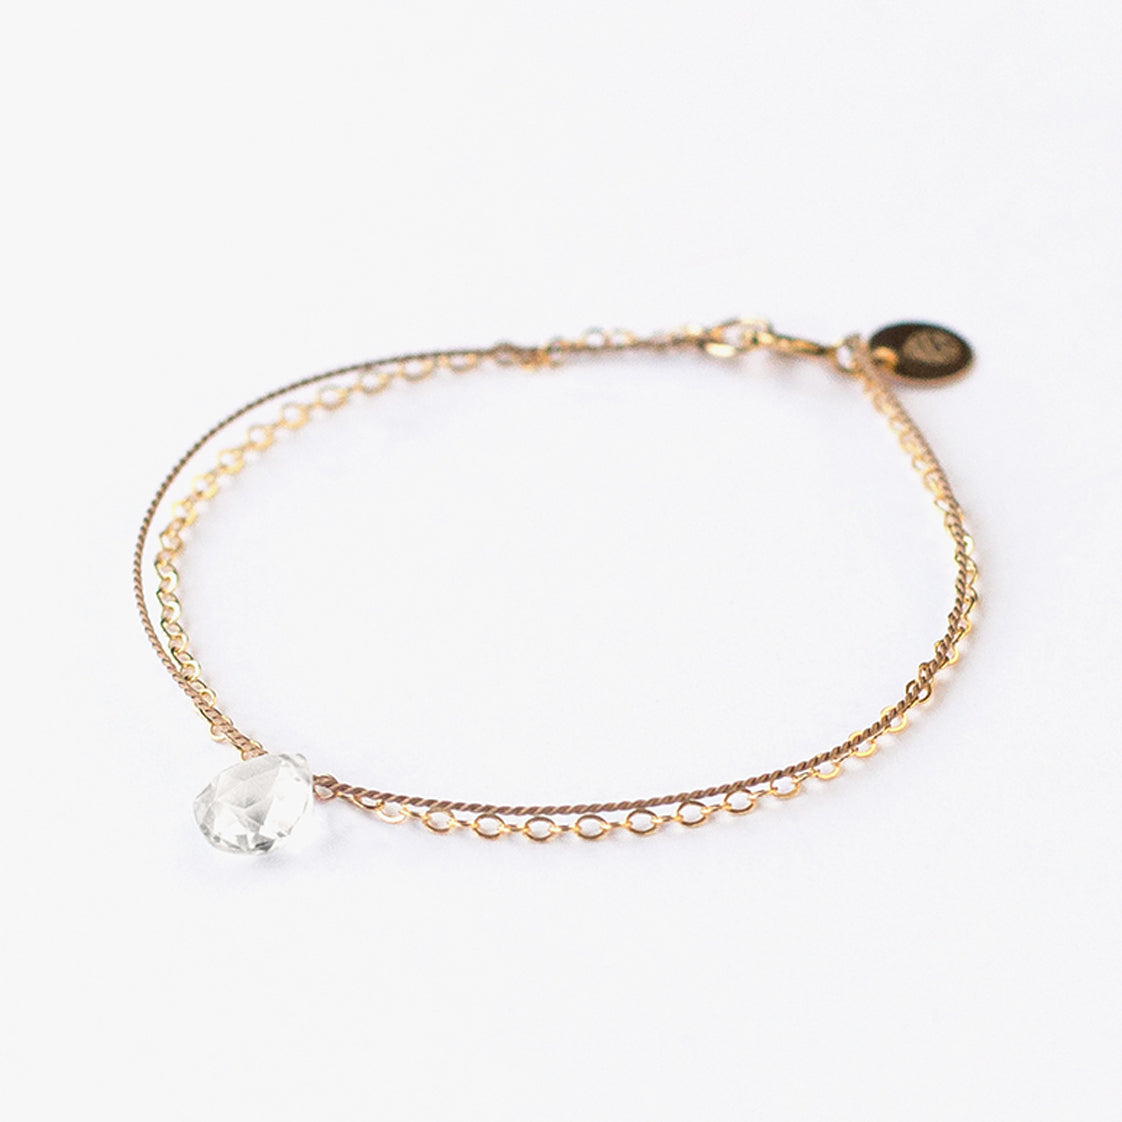 crown chakra | saharara | gold & silk clear quartz bracelet